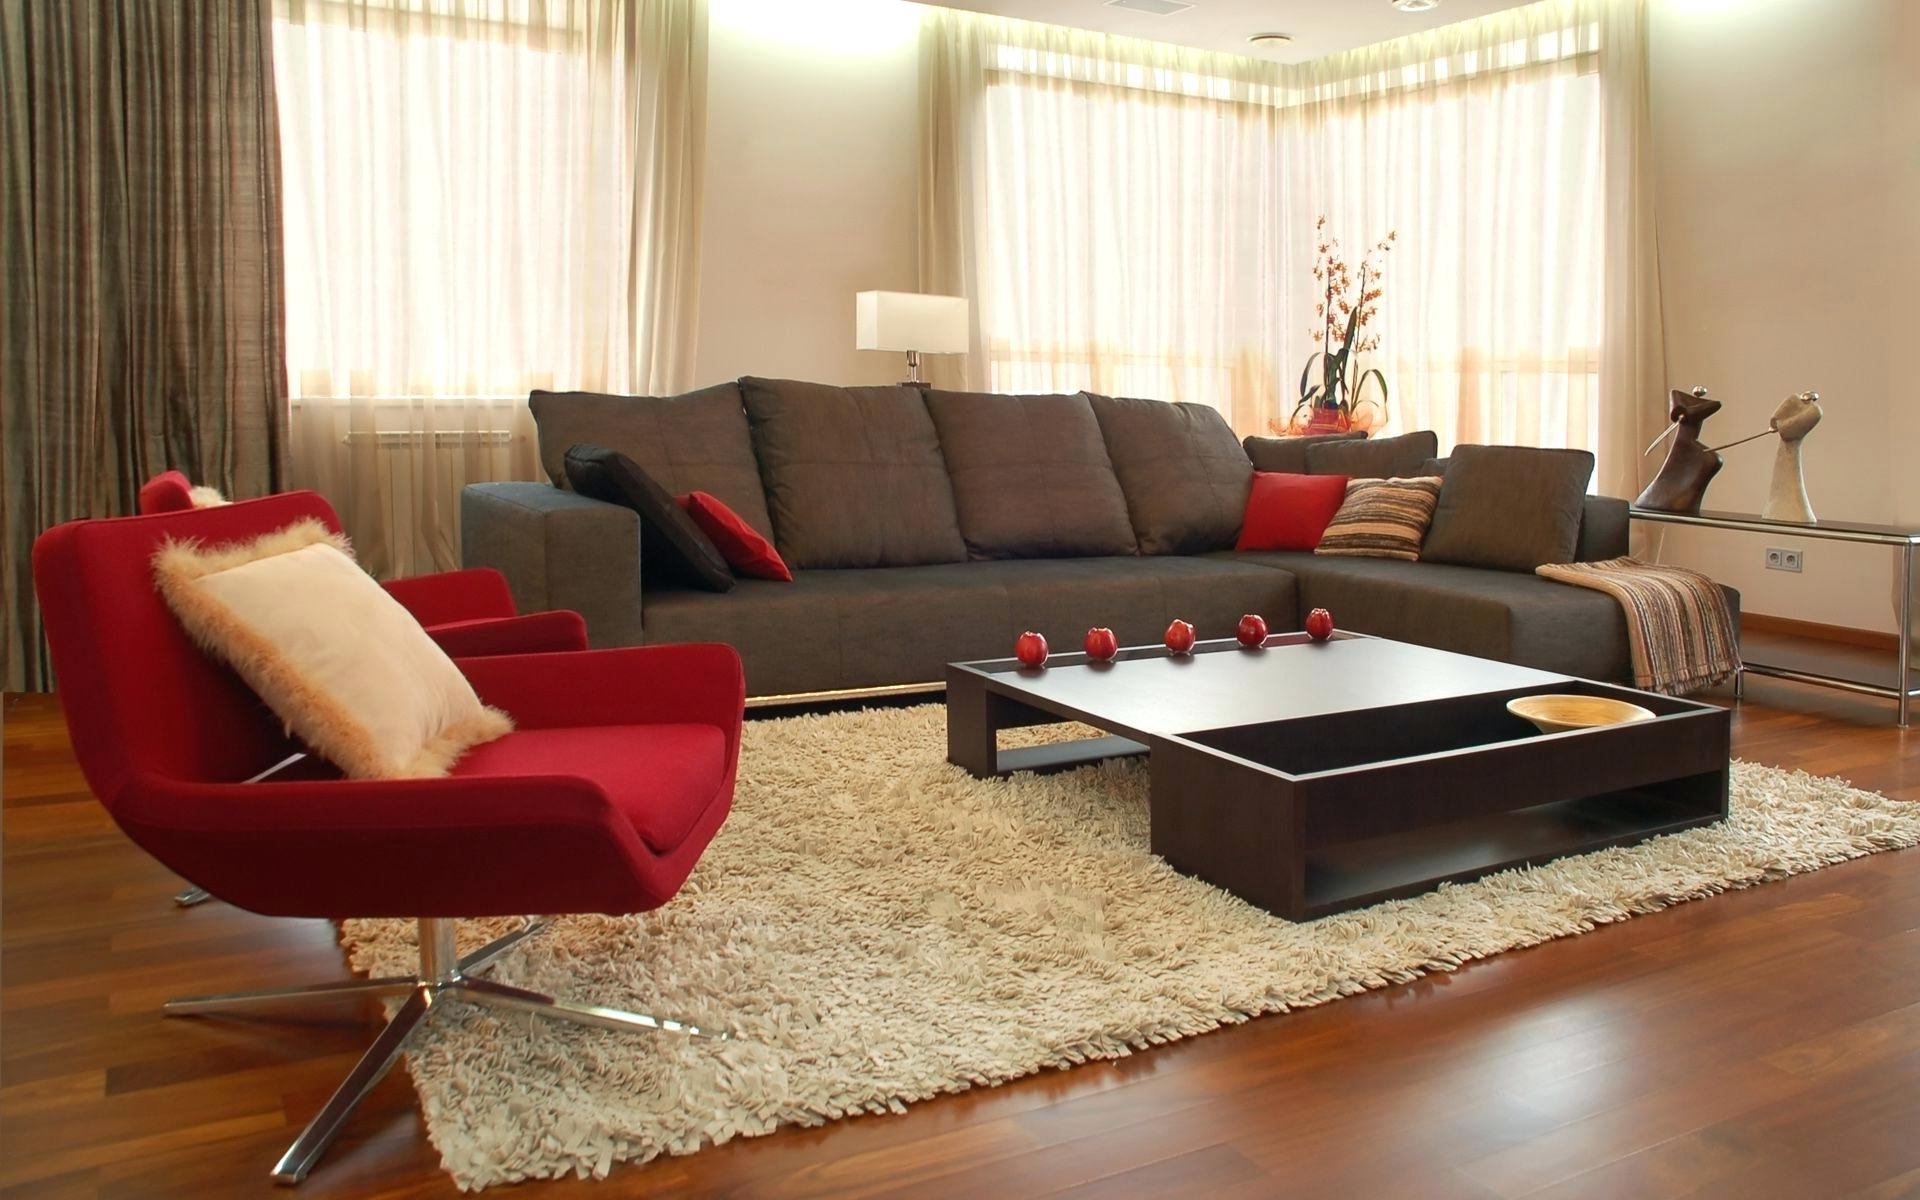 Well Known Red Chairs For Living Room Beautiful Corner Bench Living Room Design Pertaining To Red Sofas And Chairs (View 18 of 20)